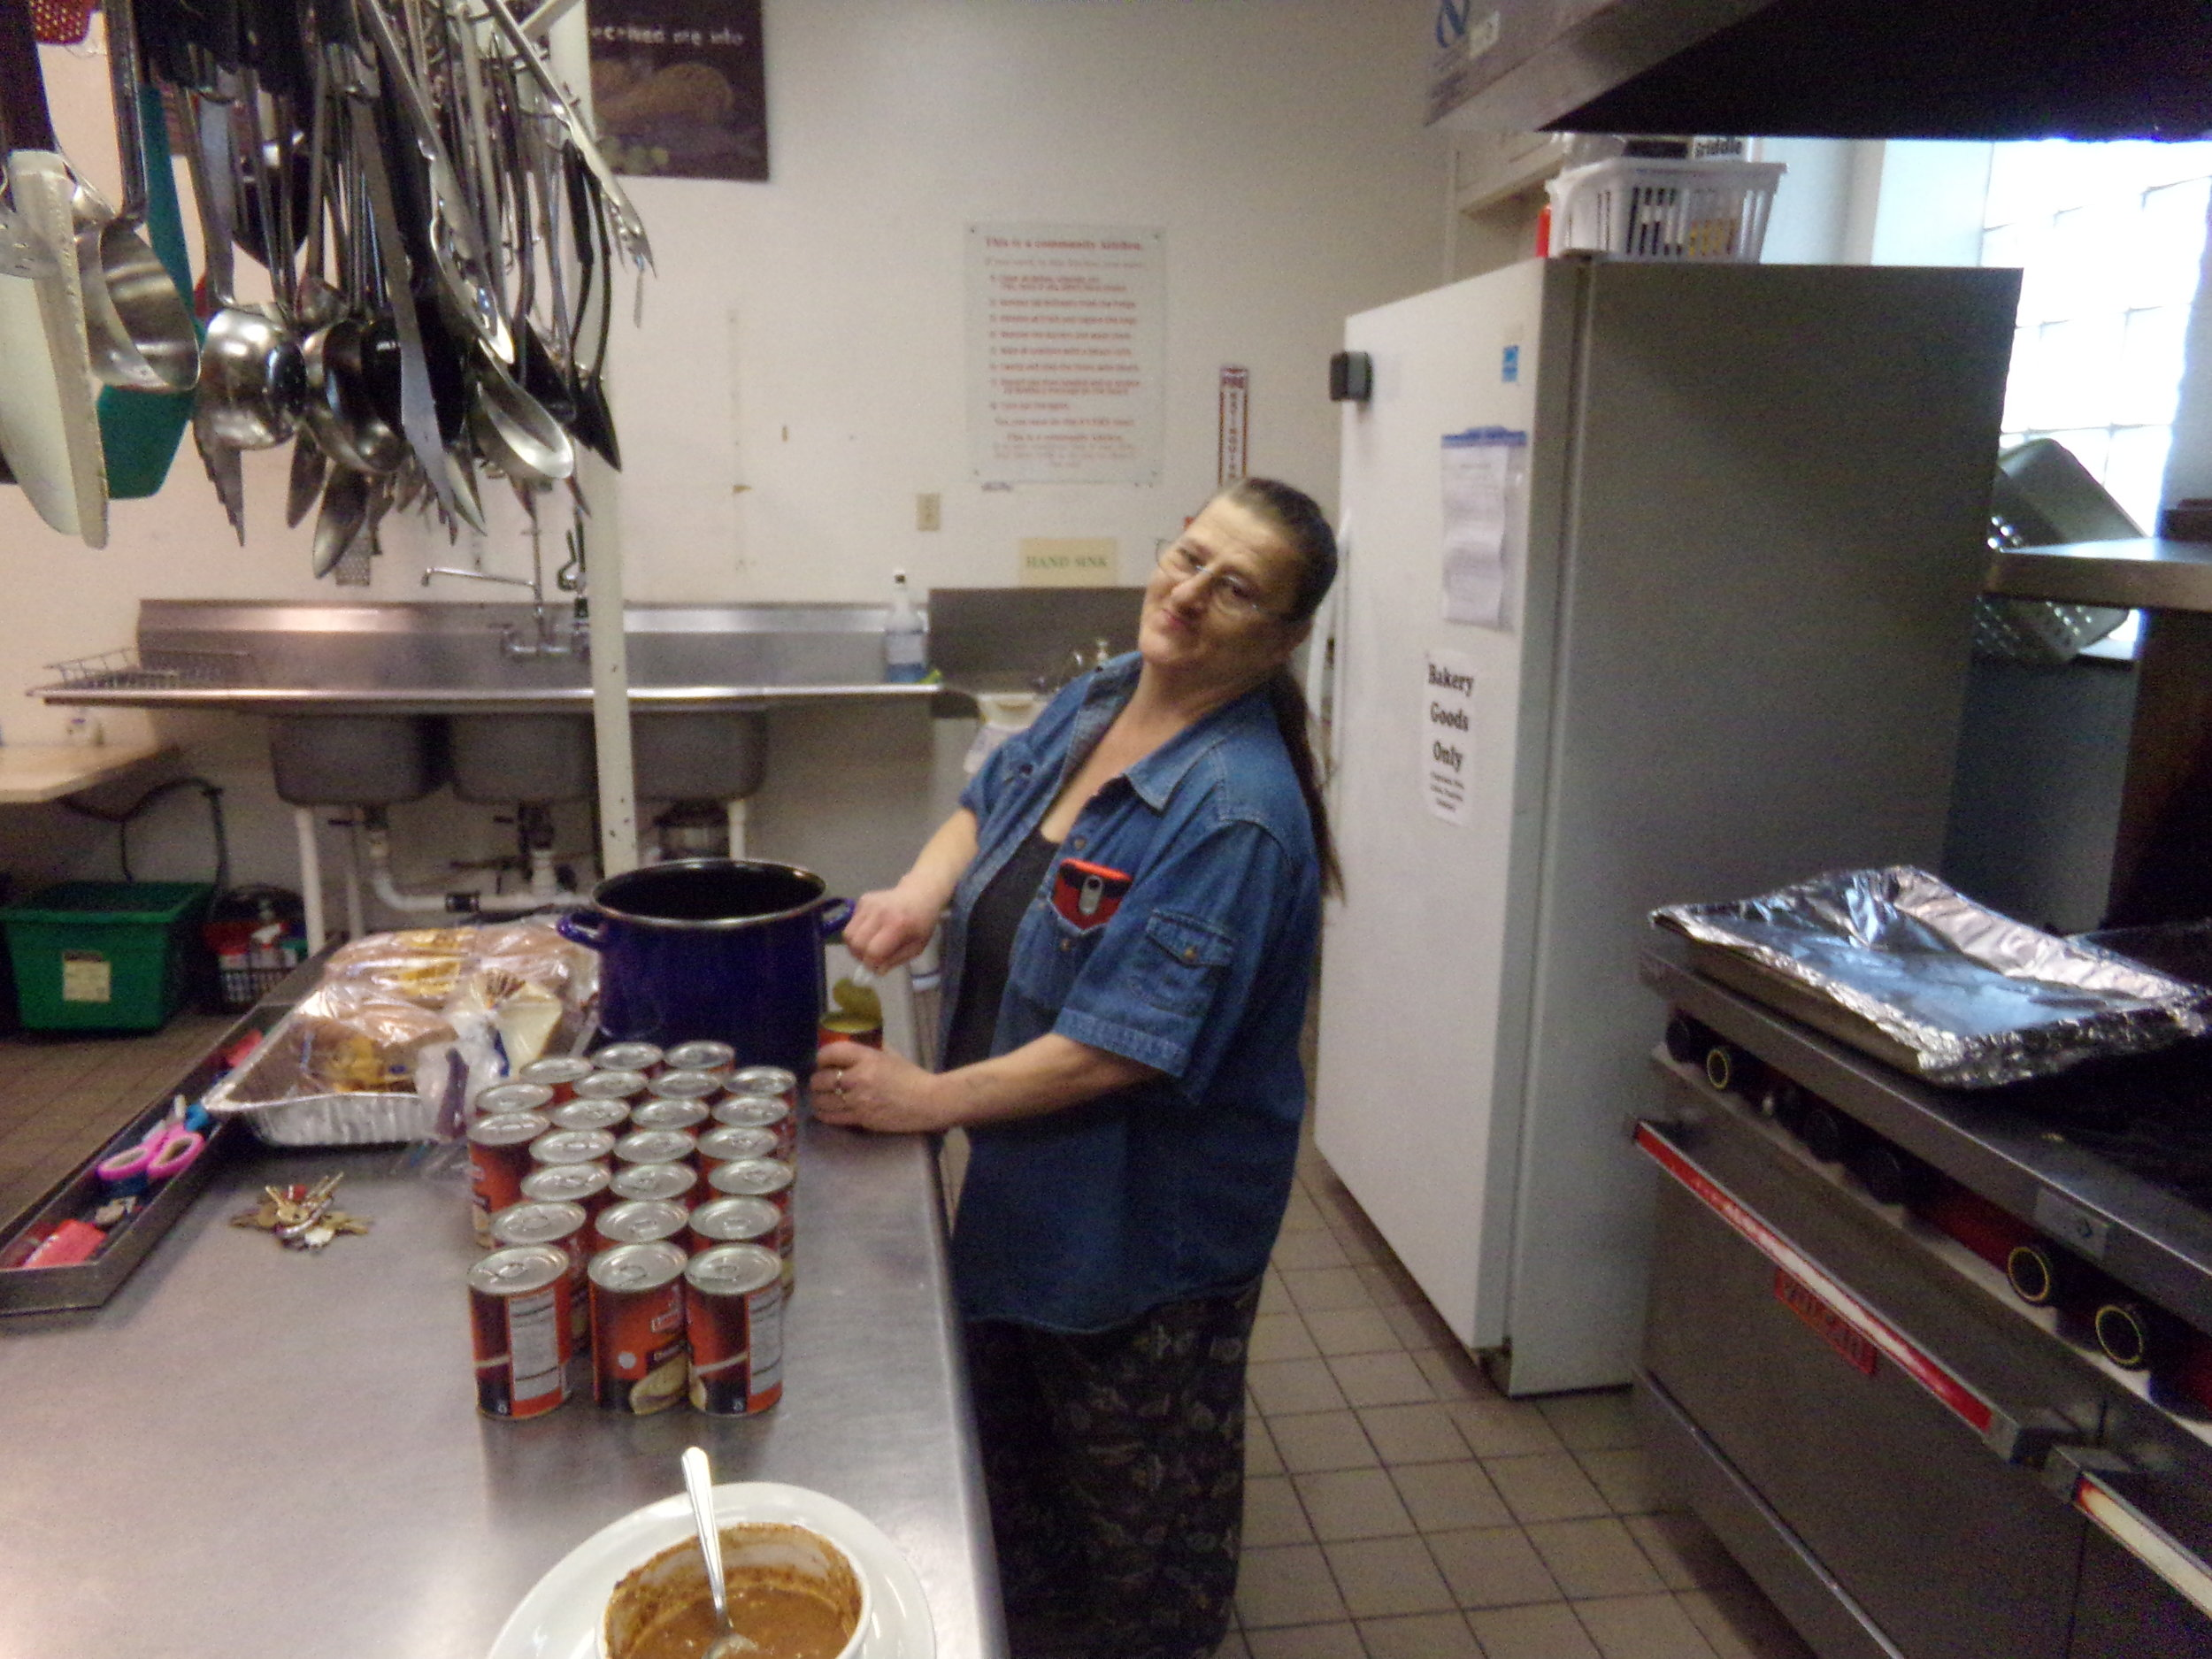 Debbie Coleman, Director of Food Ministries, prepares, along with her team of volunteers, up to 600 meals a month.